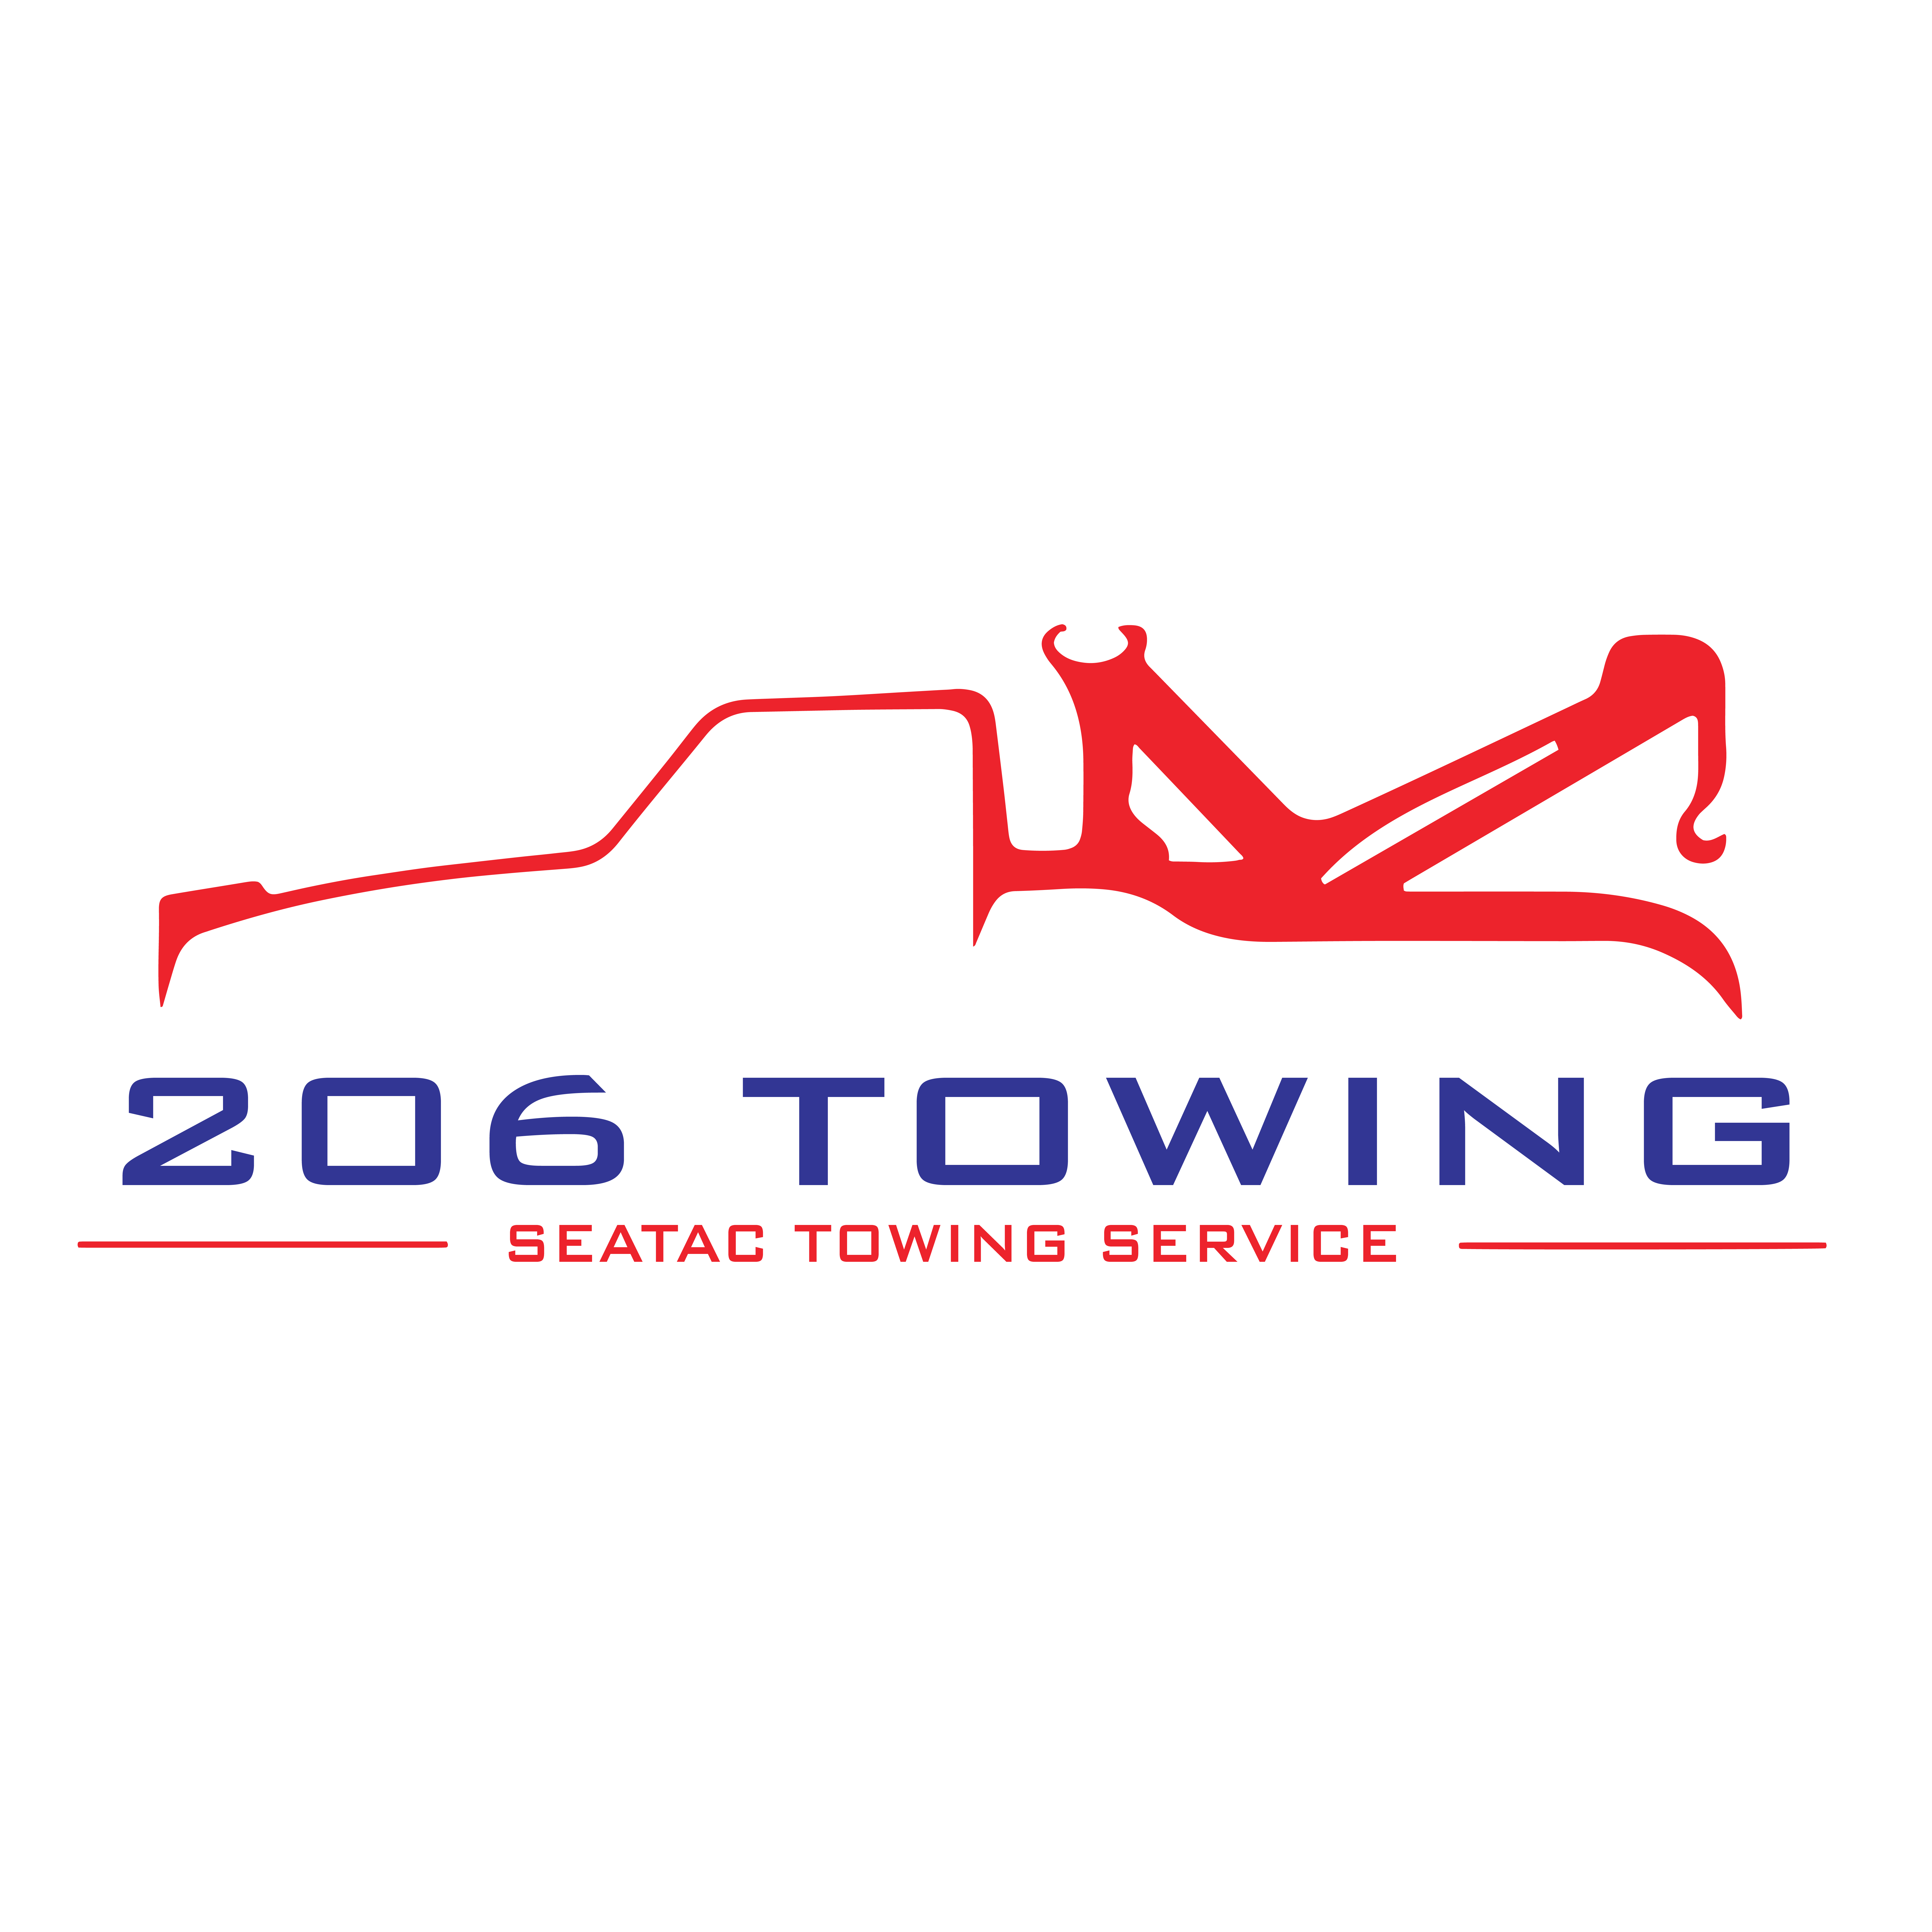 206 Towing